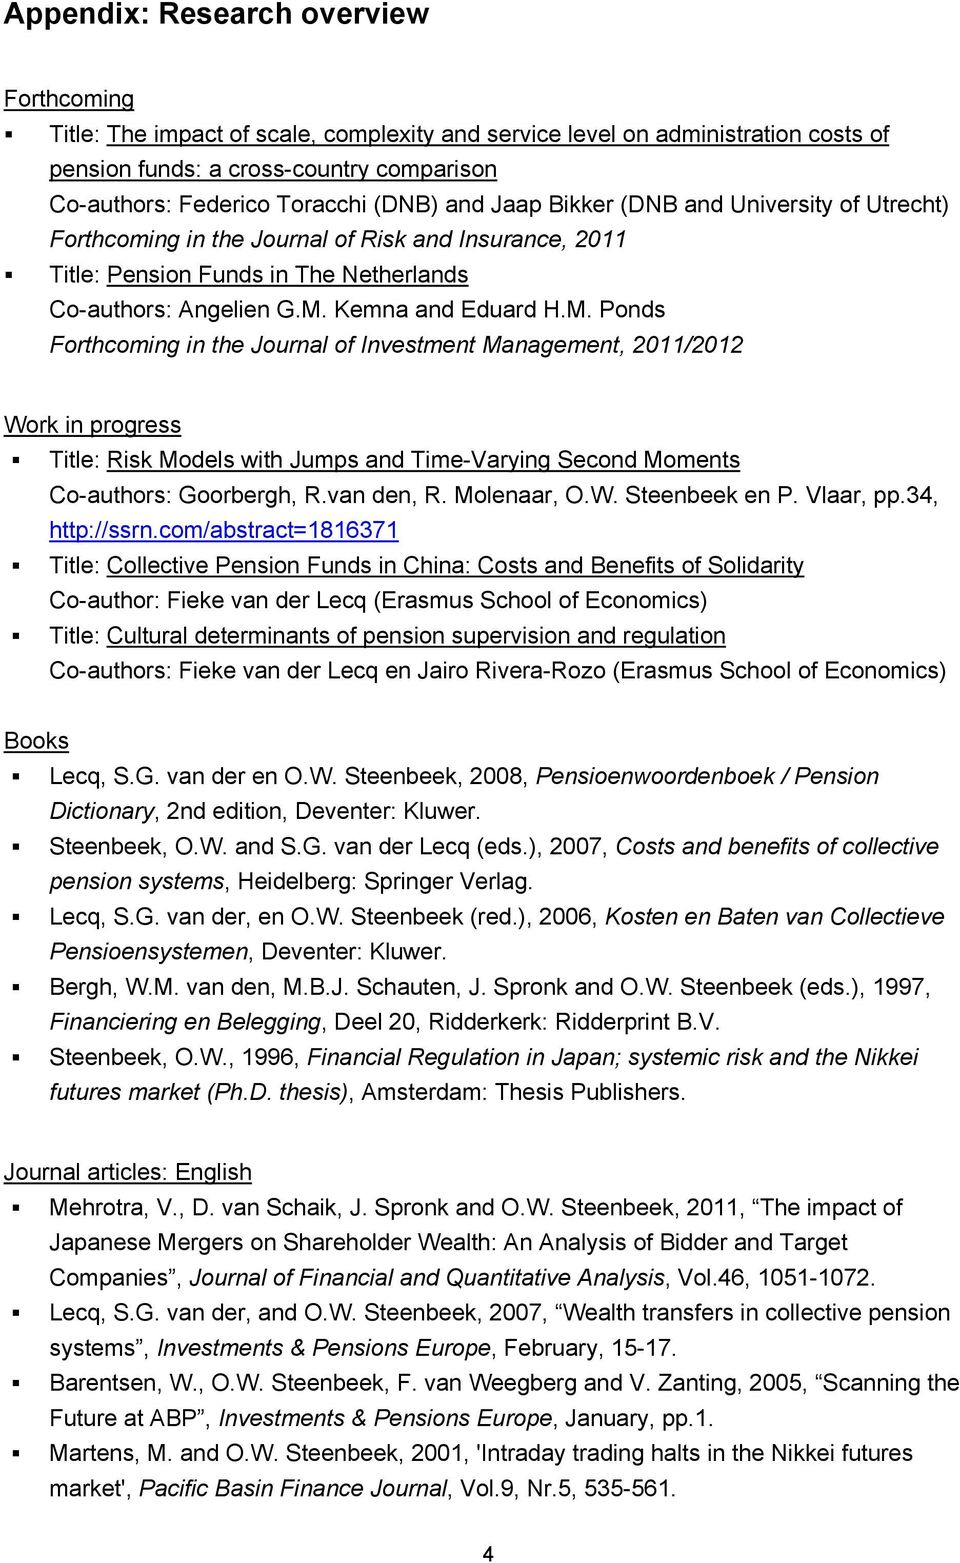 Kemna and Eduard H.M. Ponds Forthcoming in the Journal of Investment Management, 2011/2012 Work in progress Title: Risk Models with Jumps and Time-Varying Second Moments Co-authors: Goorbergh, R.